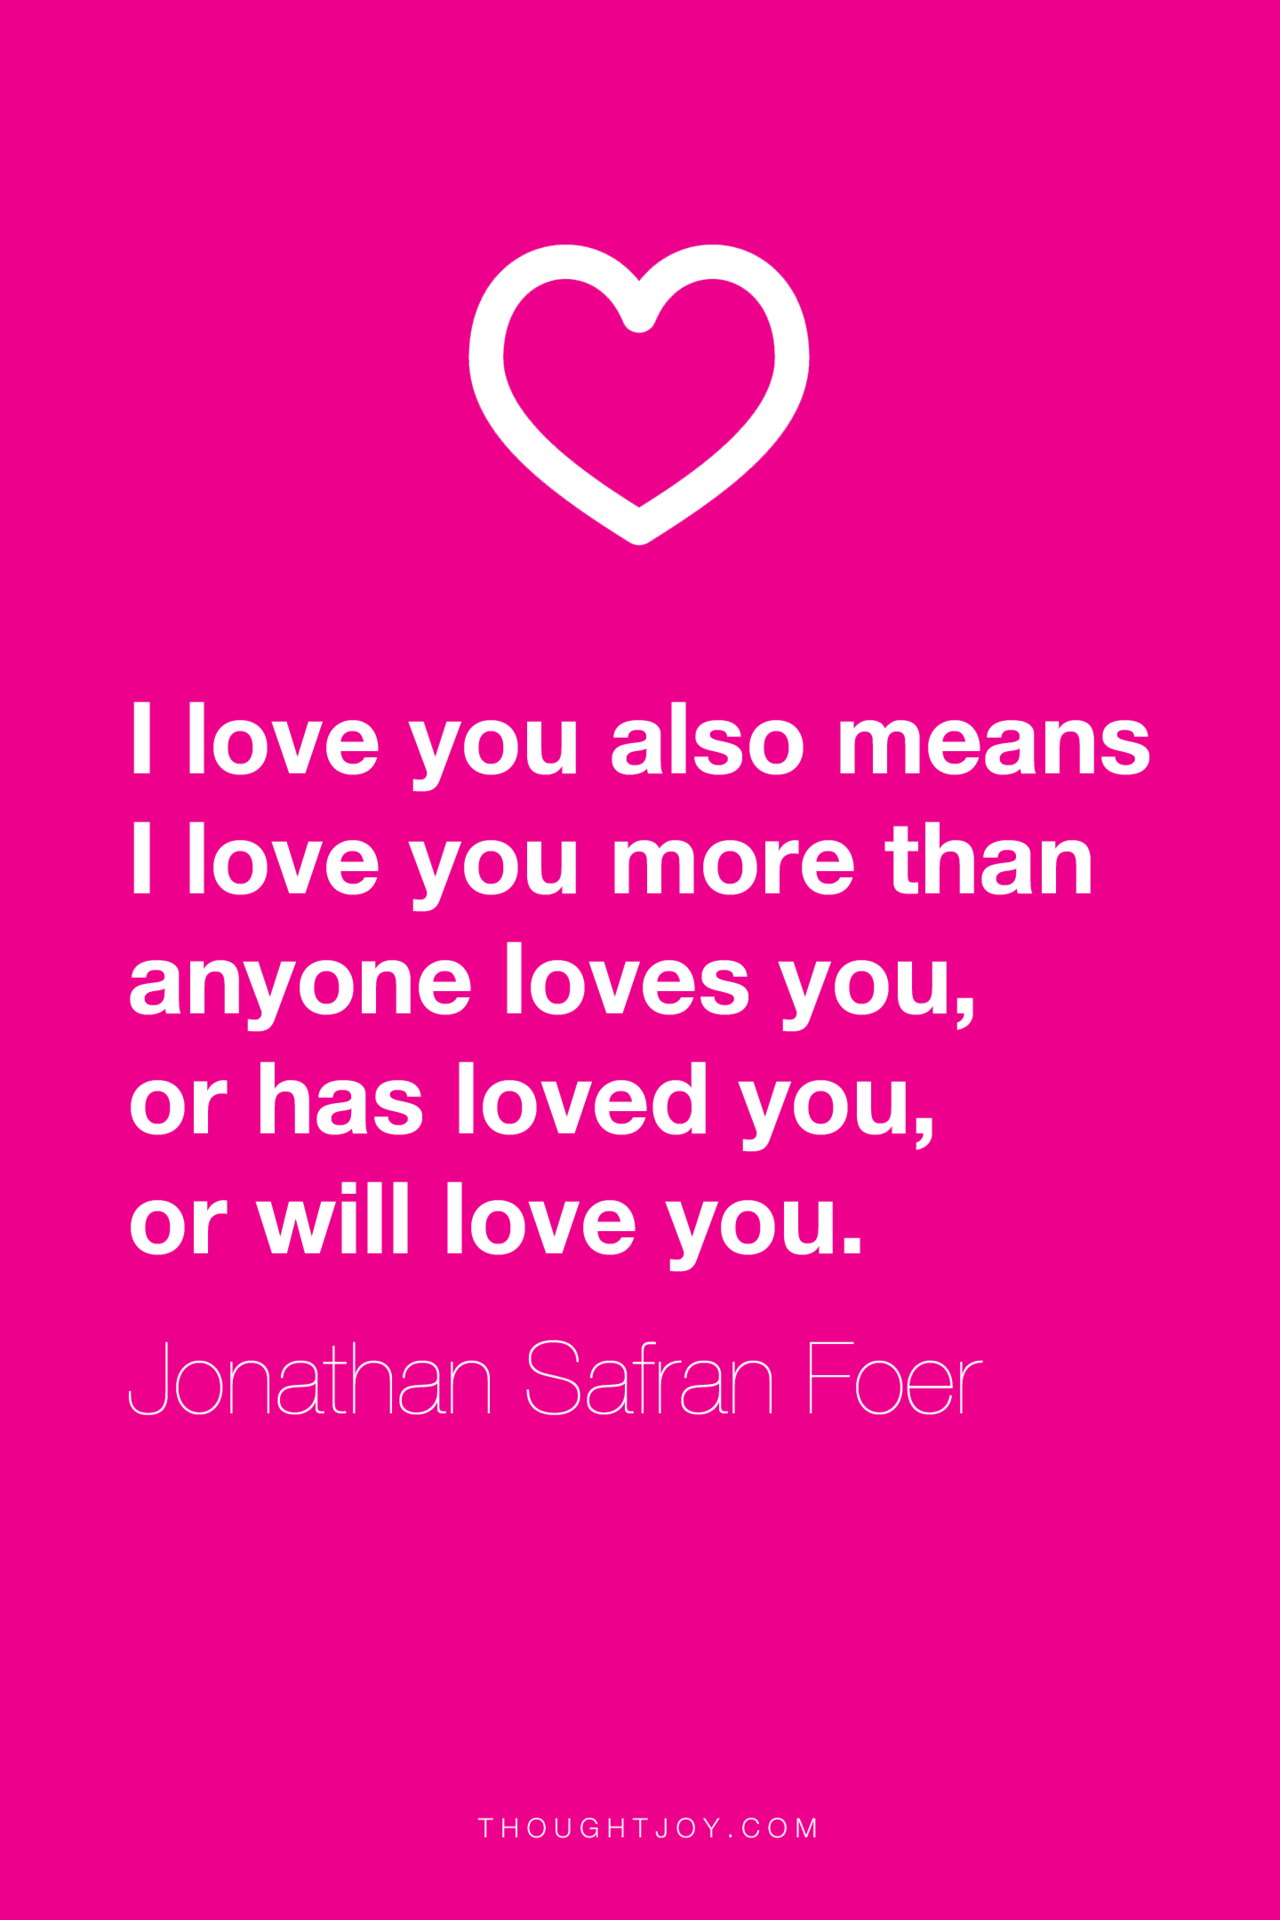 150 I Love You Quotes That Perfectly Describe Life With Your True Love Love You More Quotes Strong Love Quotes Happy Anniversary Quotes